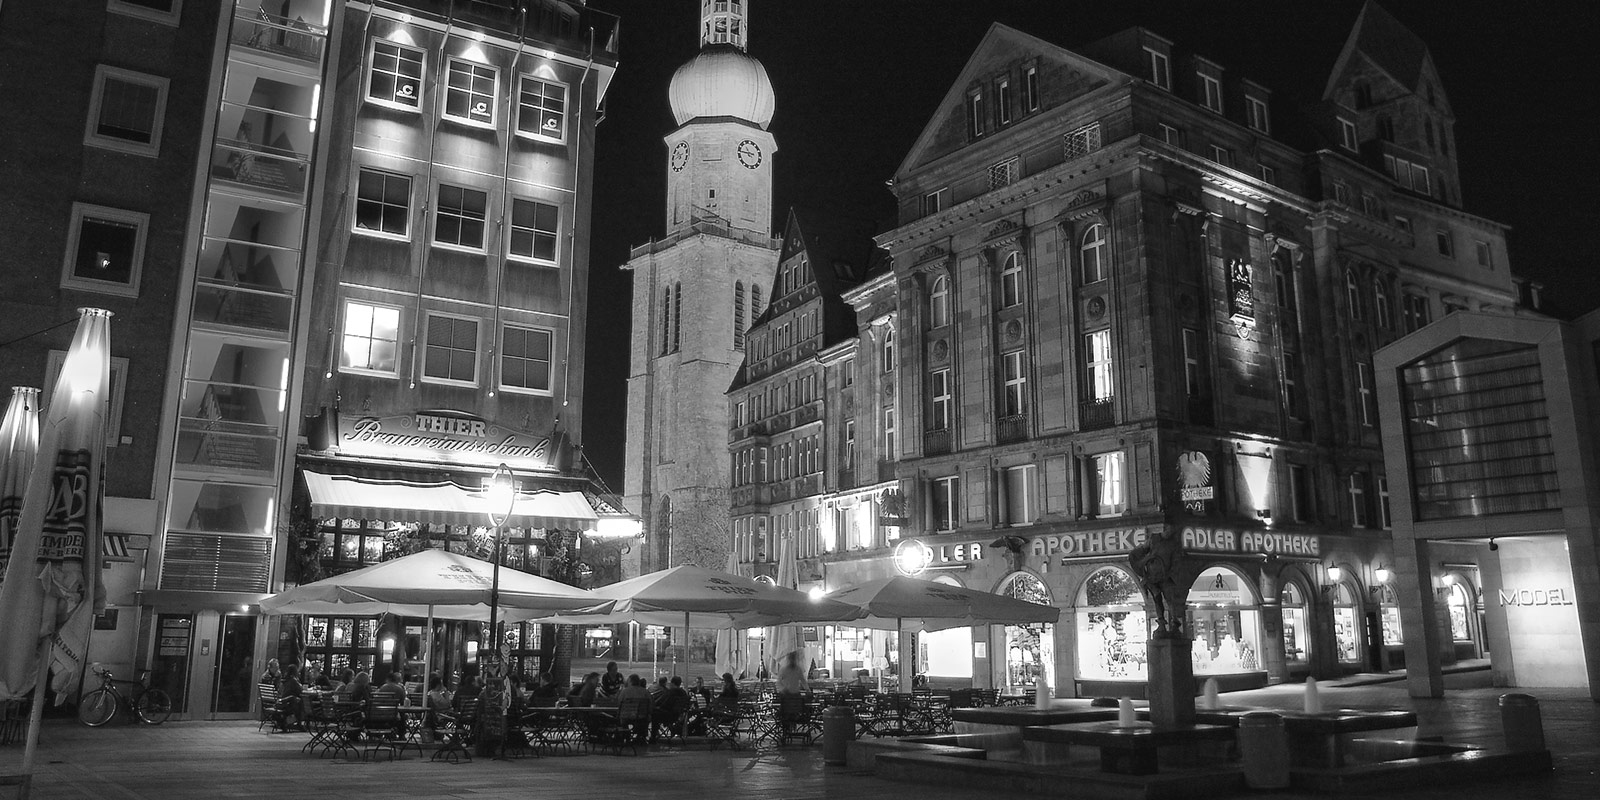 Dortmund at night